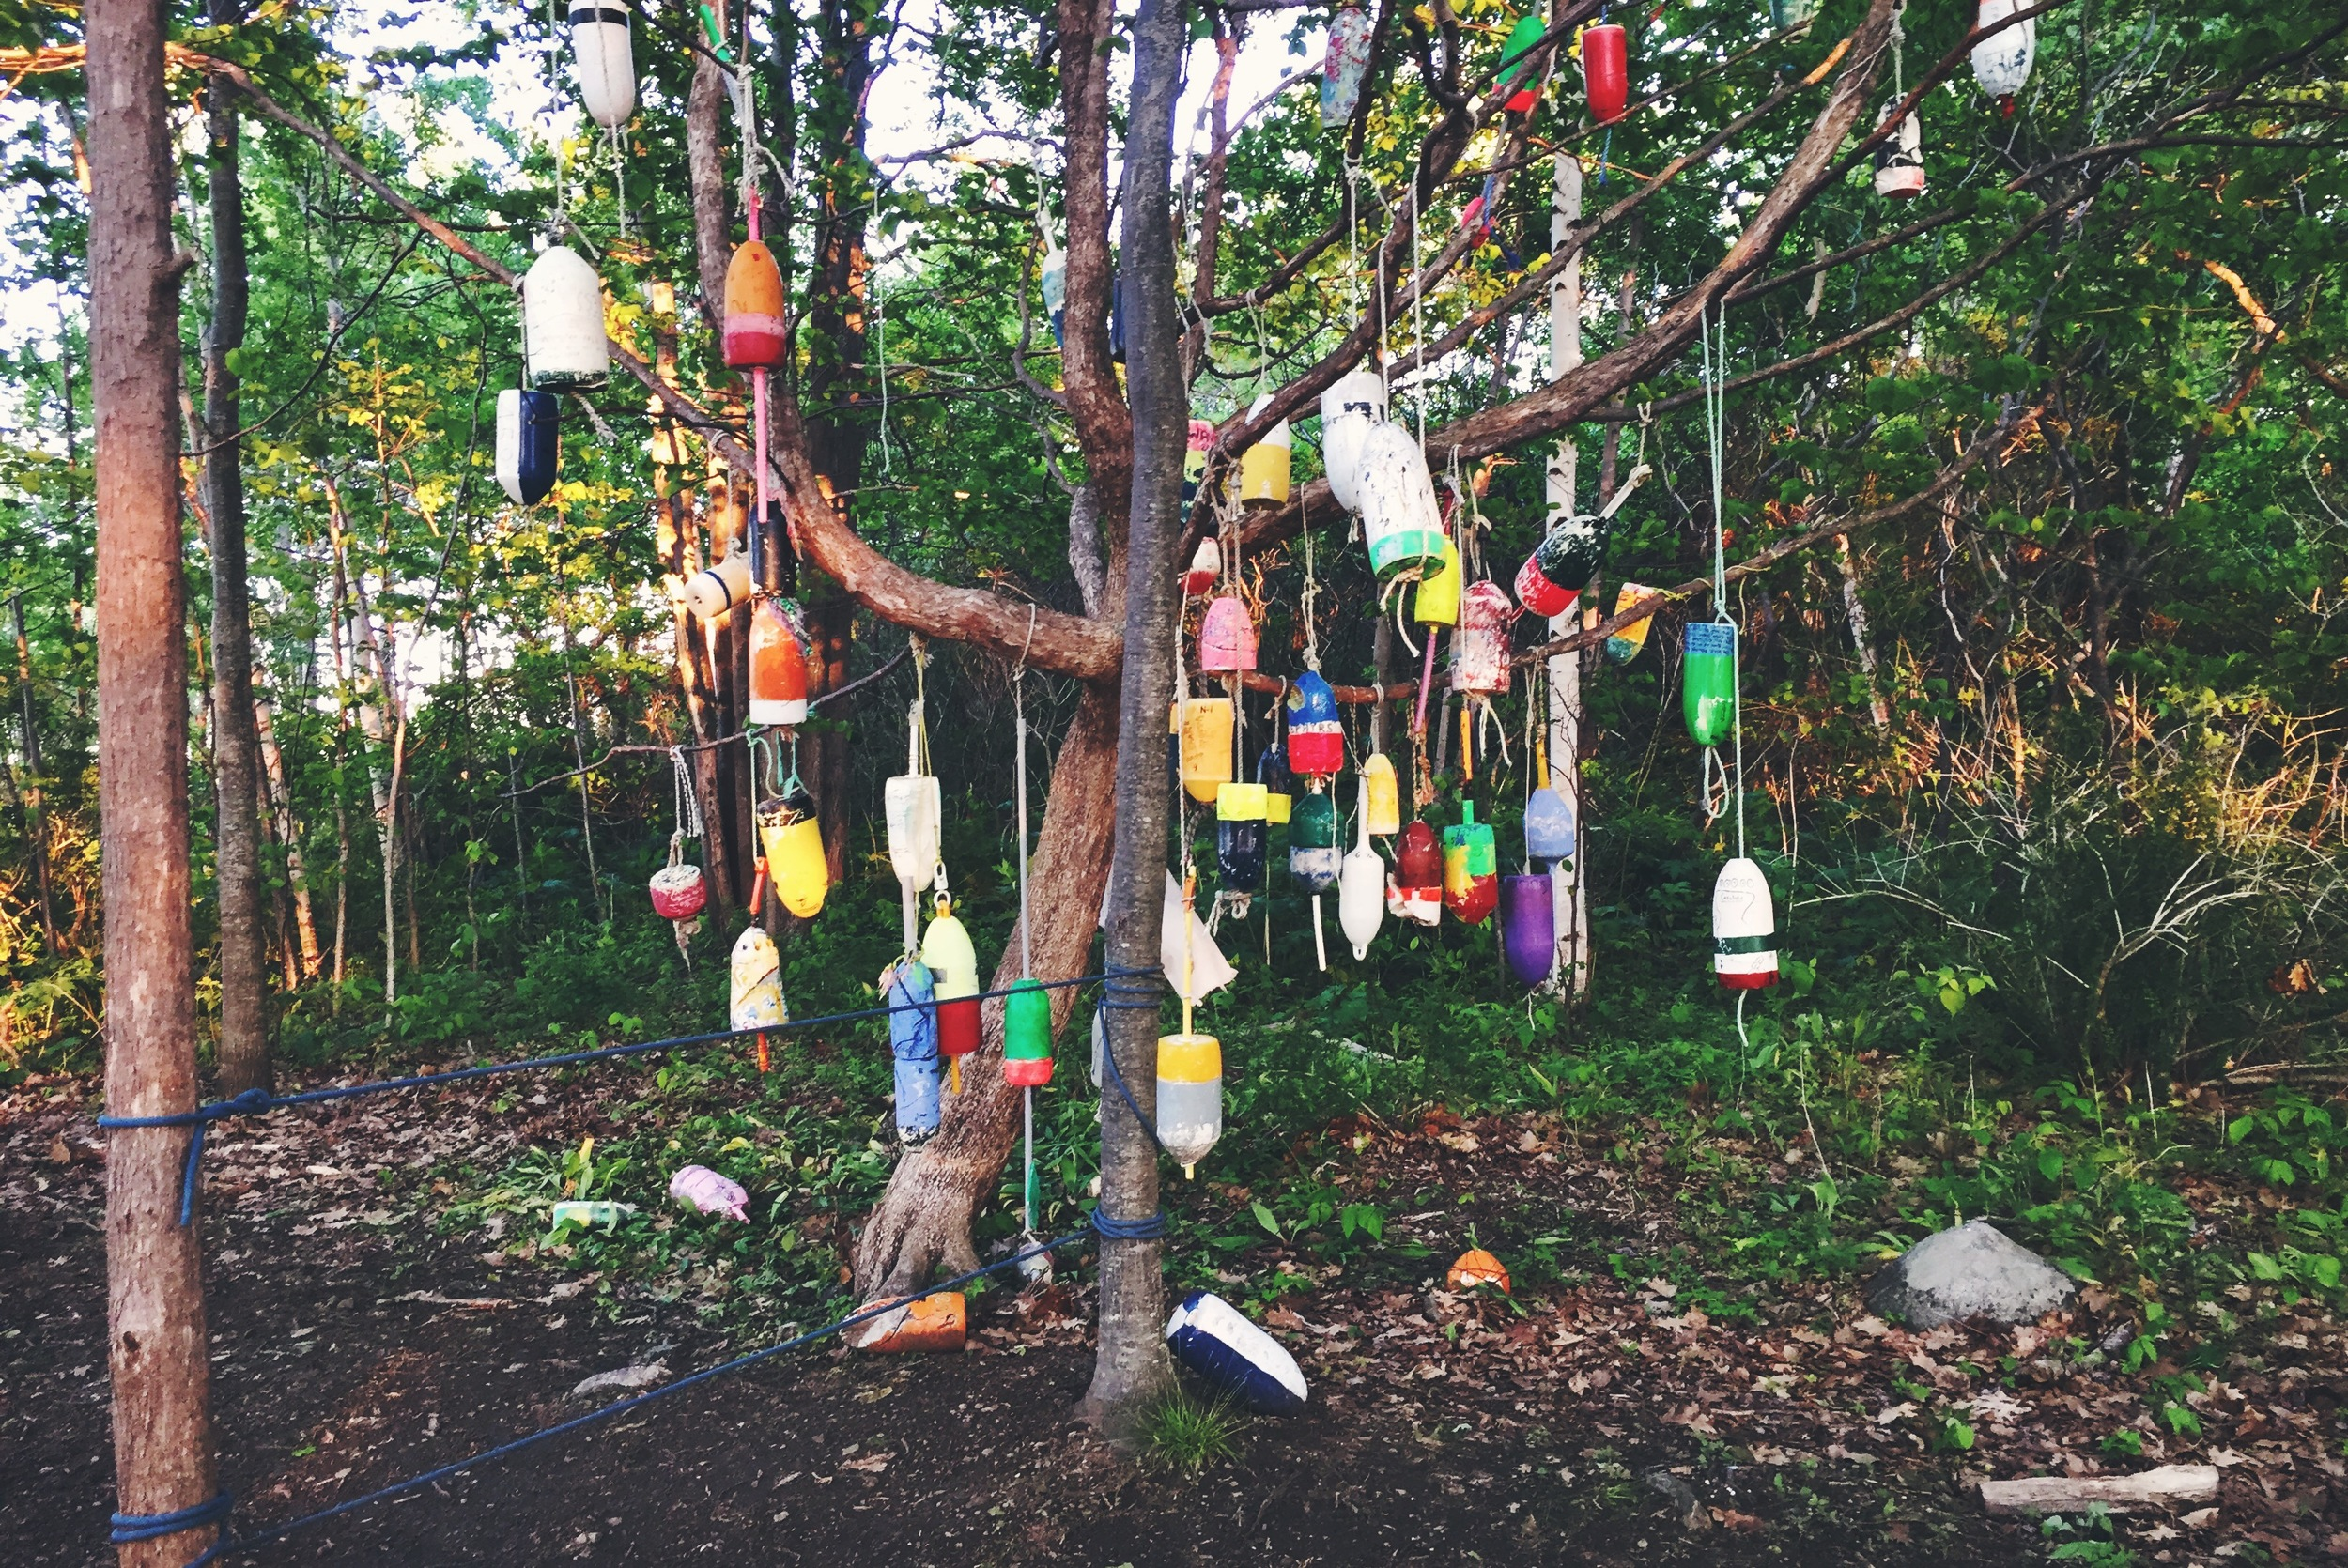 Decorative buoy trees, a common method of recycling lost lobster buoys in Casco Bay.